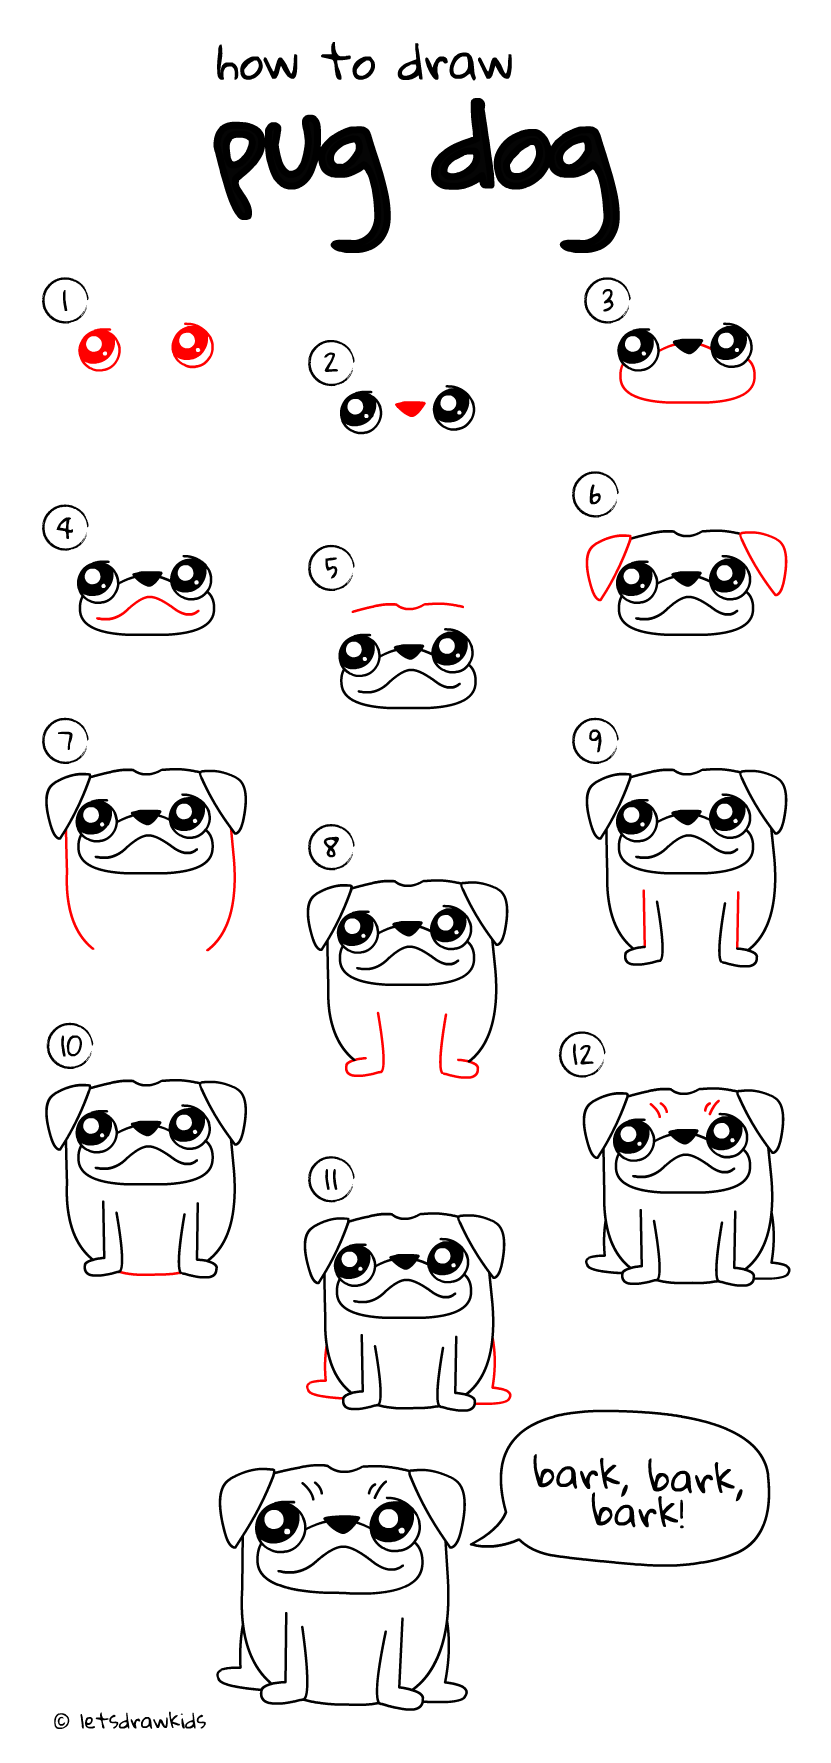 how to draw a geisha step by step how to draw pug dog easy drawing step by step perfect a step draw how to by step geisha